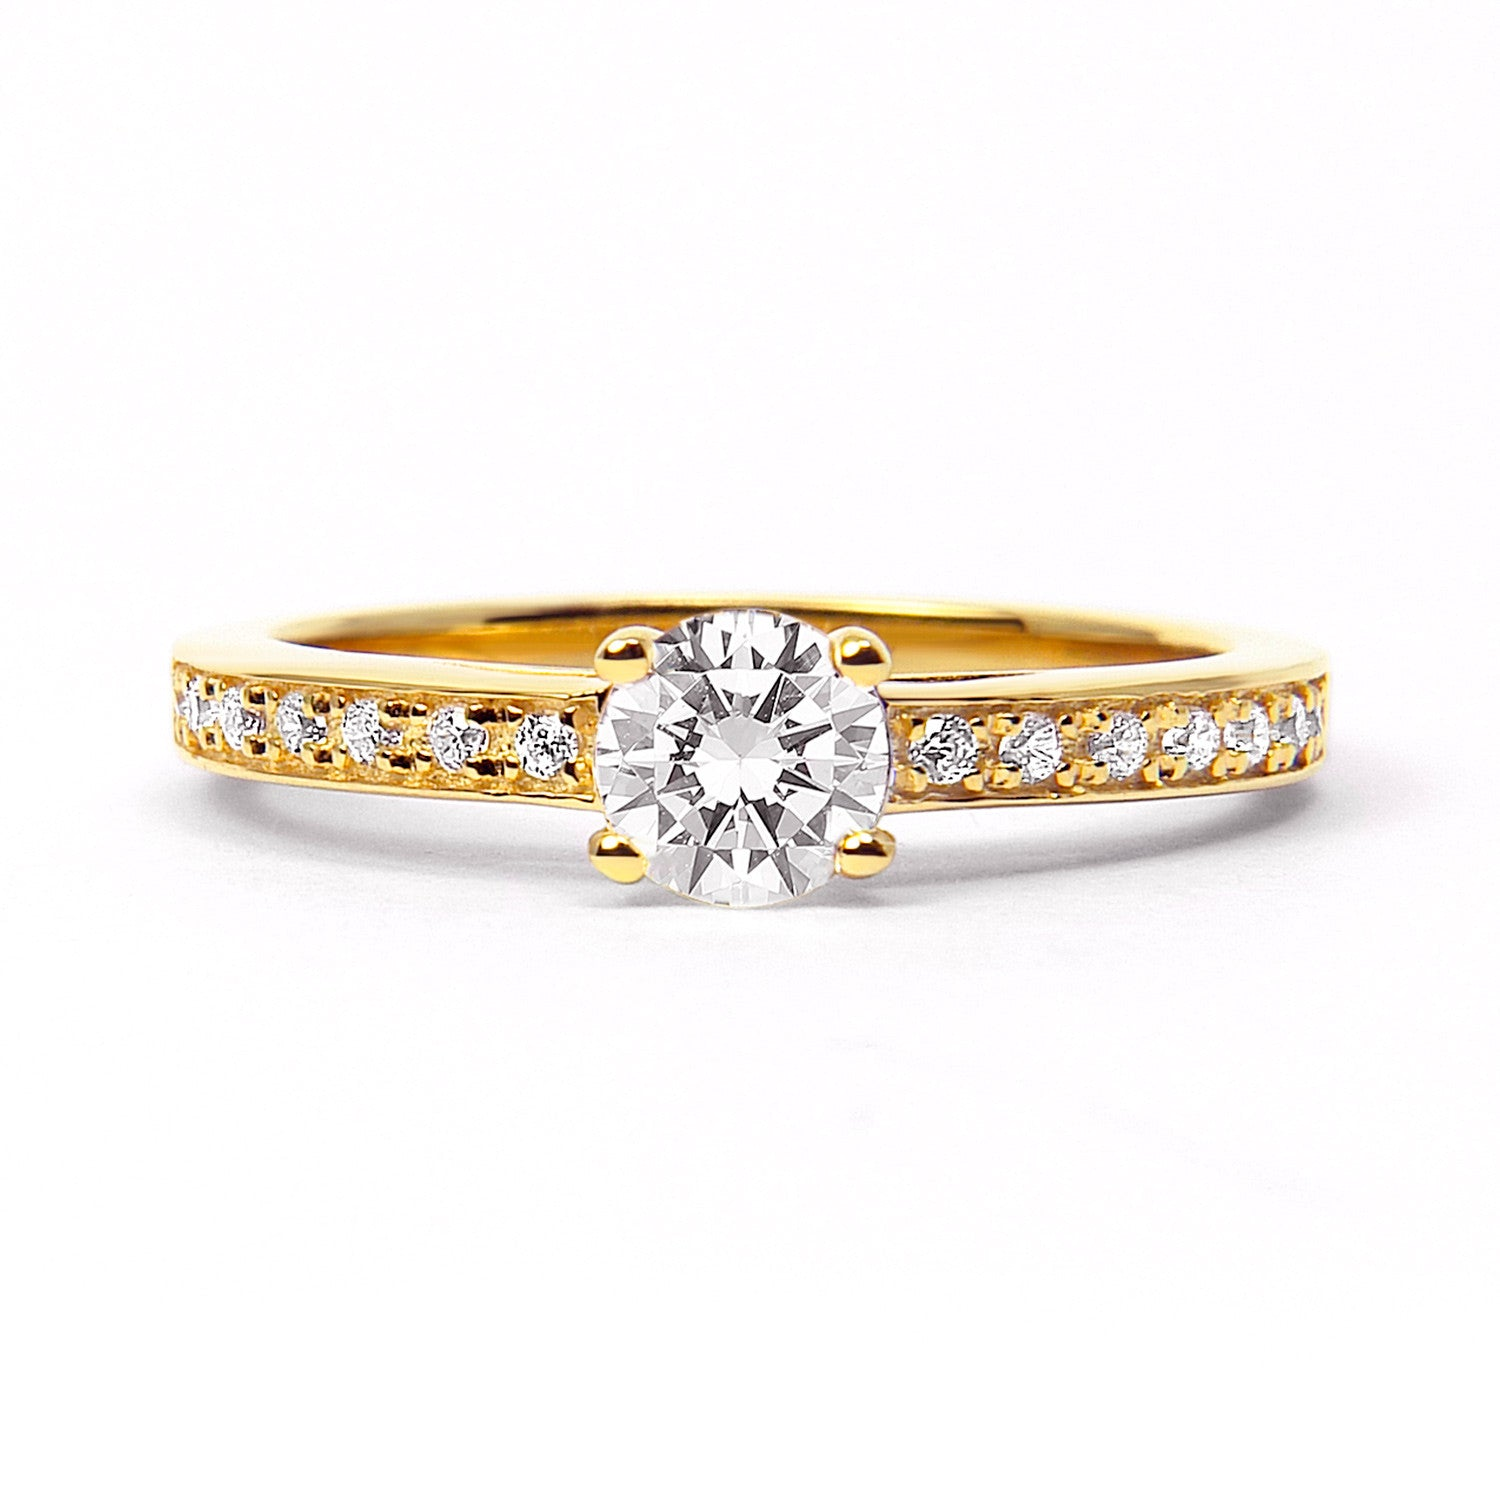 Solar Eclipse Ethical Diamond Engagement Ring, 18ct Fairtrade Gold